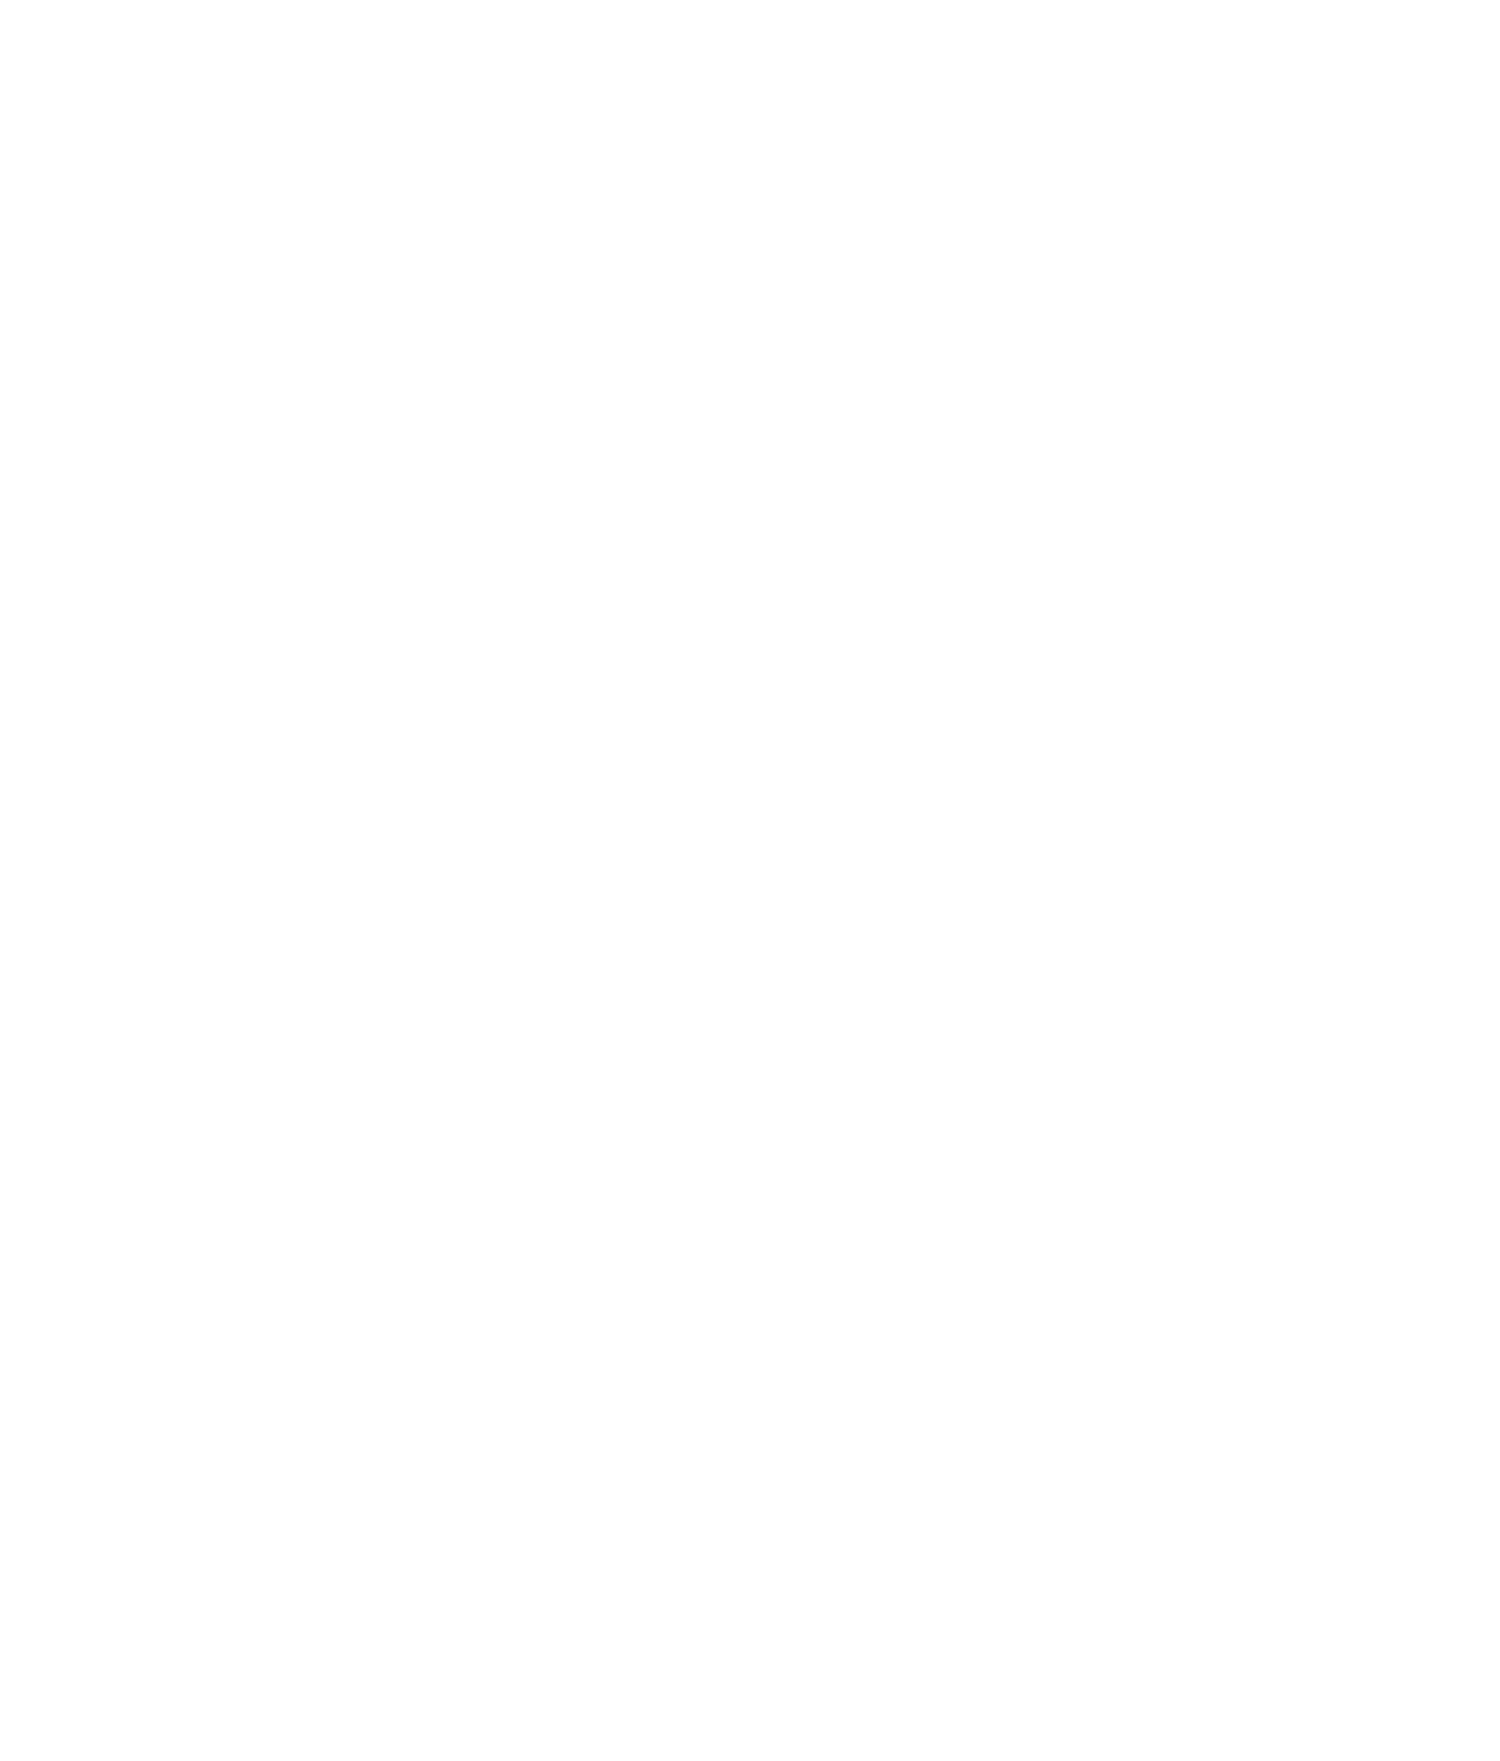 Statera Foundation